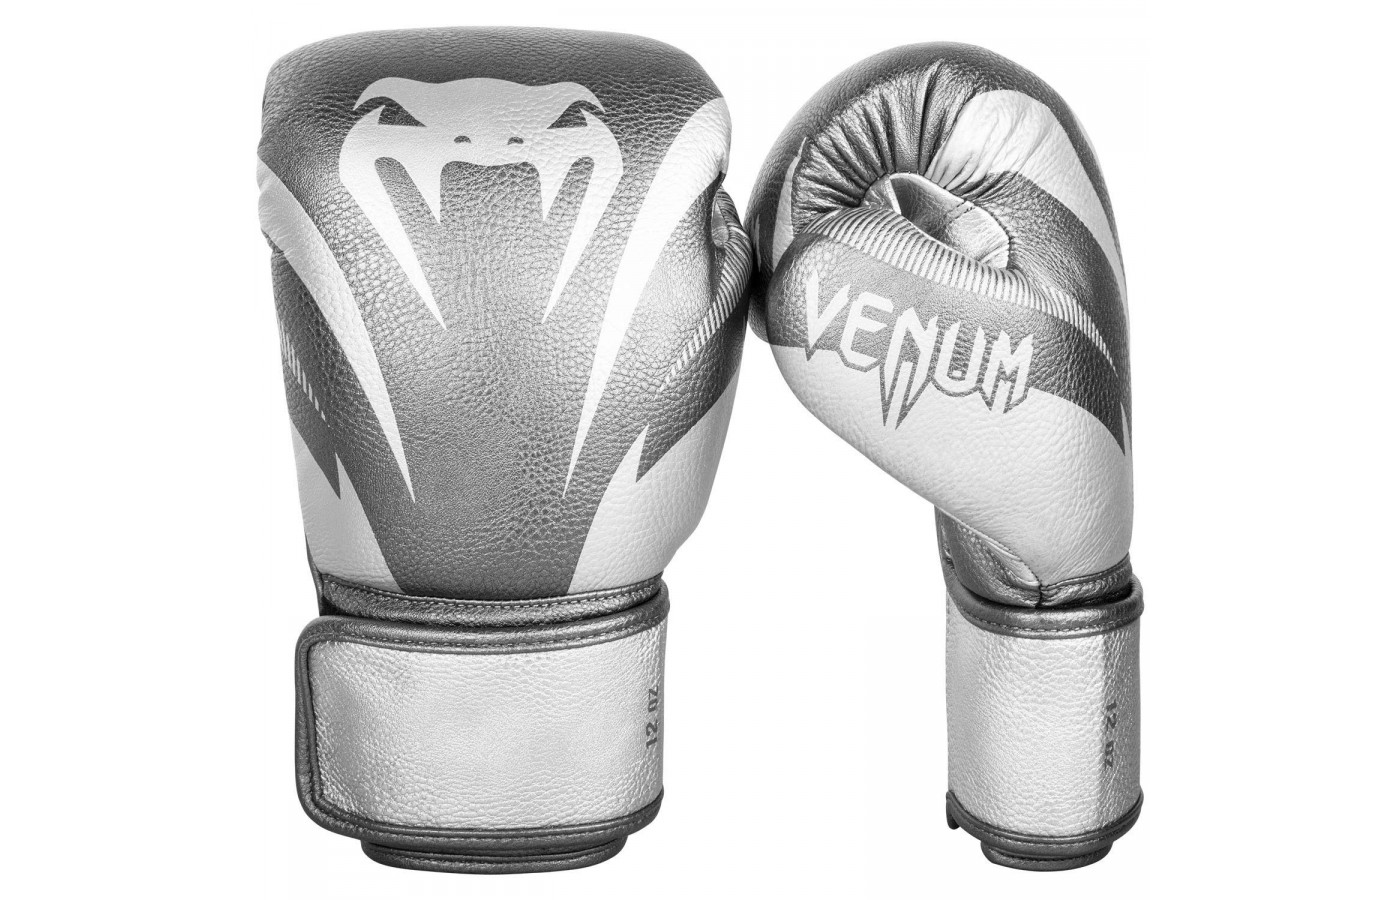 Venum Impact Silver and White